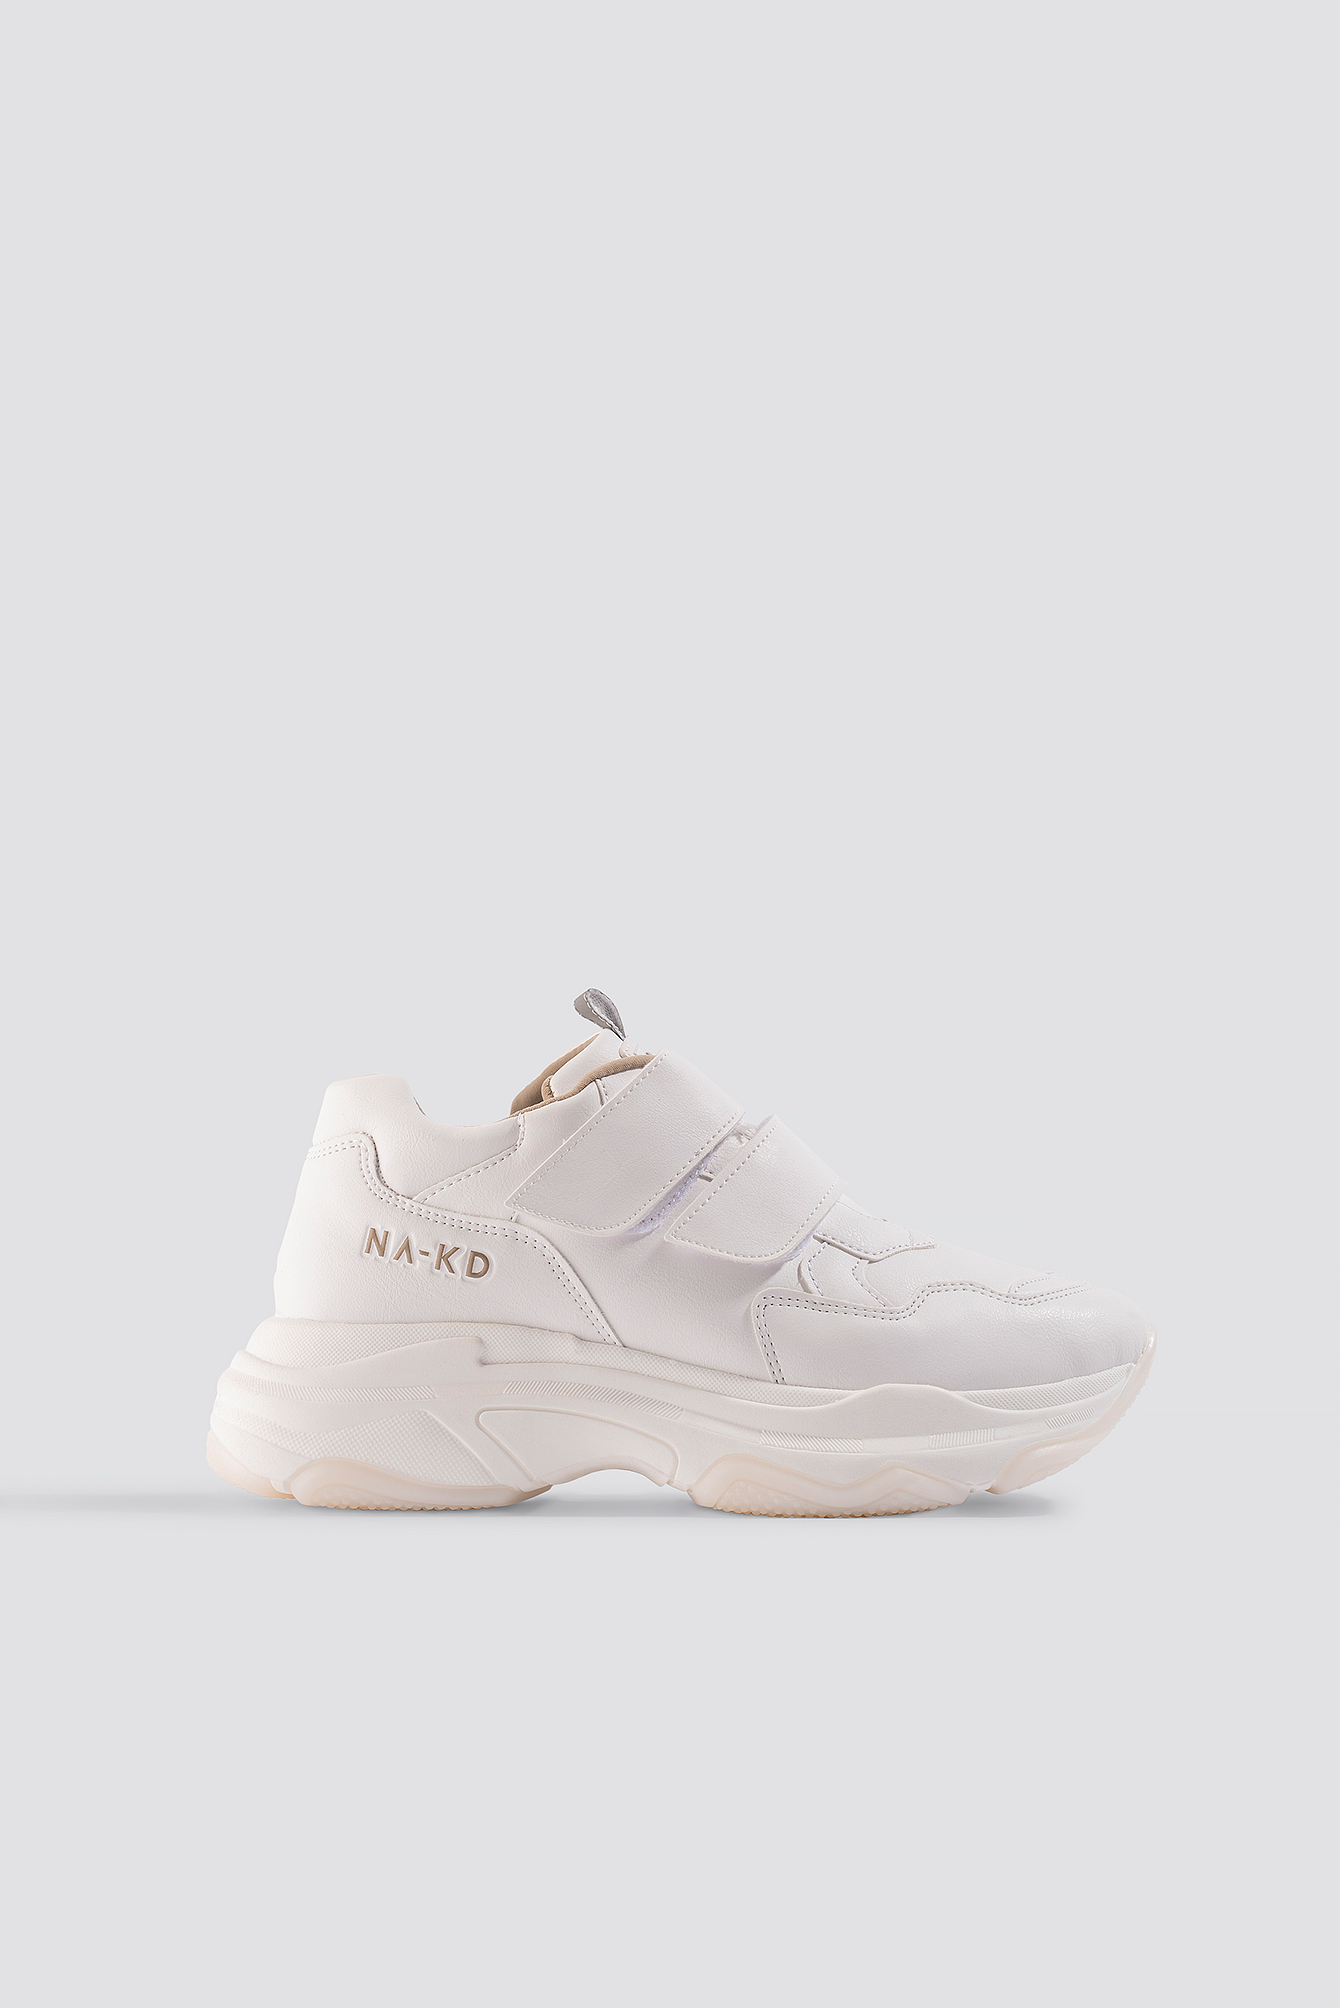 na-kd shoes -  Velcro Chunky Trainers - White,Offwhite